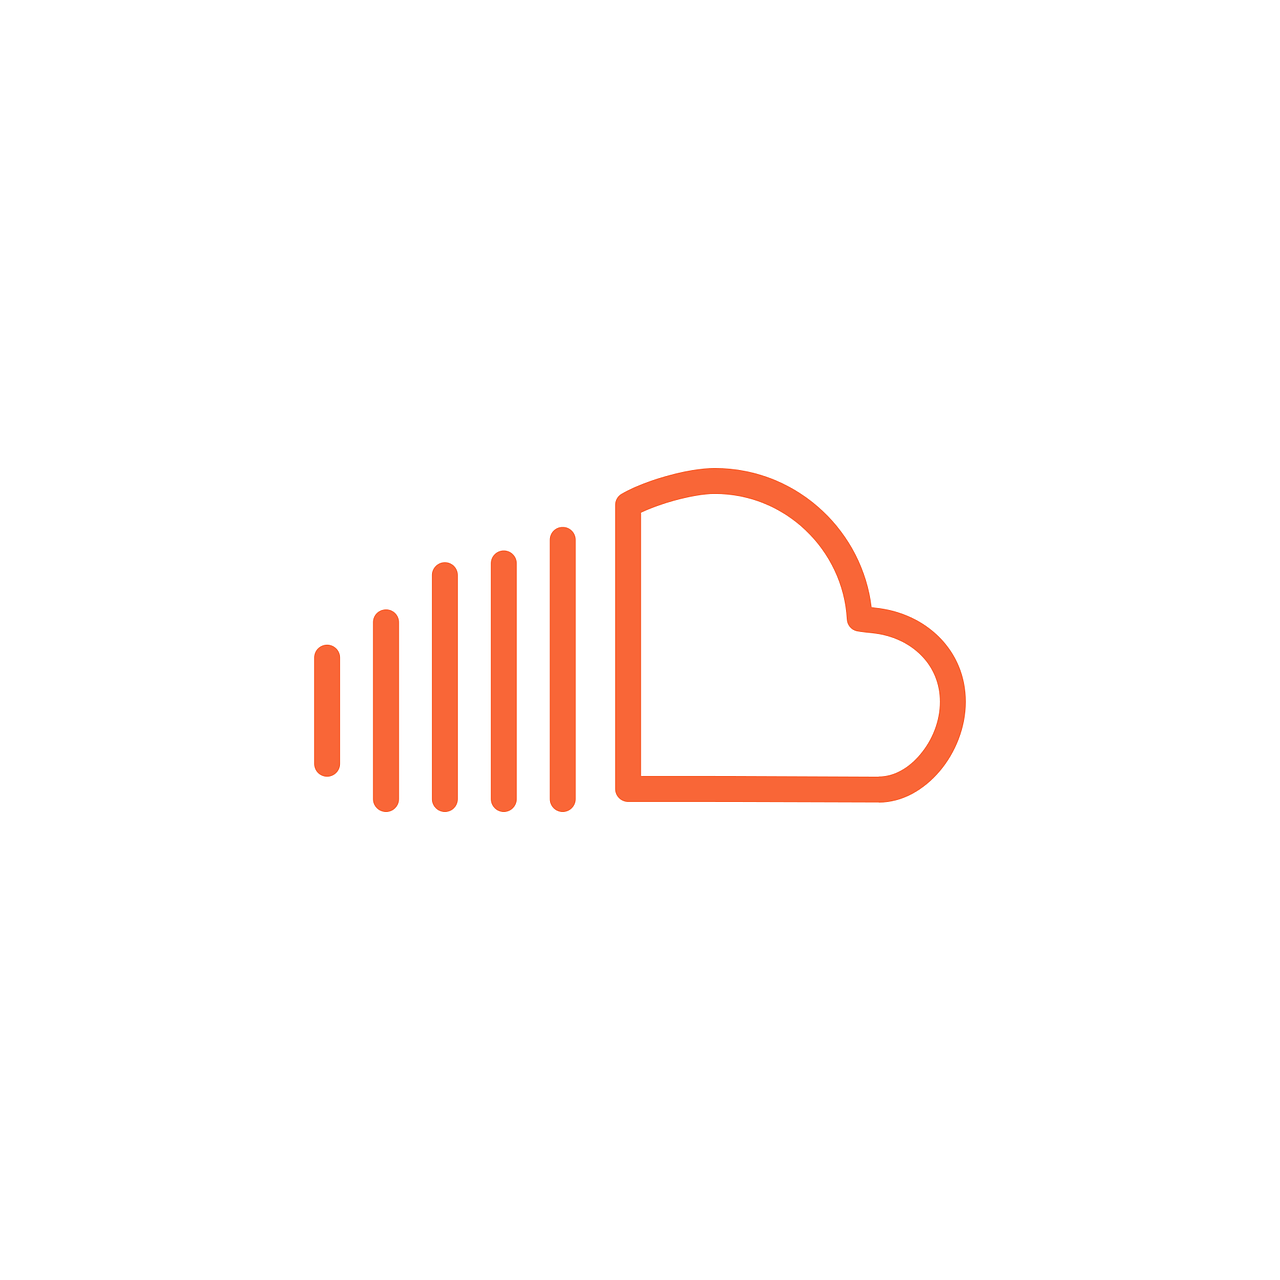 How to Get More Soundcloud Plays, Listens, & Views (I Have Over 41,957 Followers)